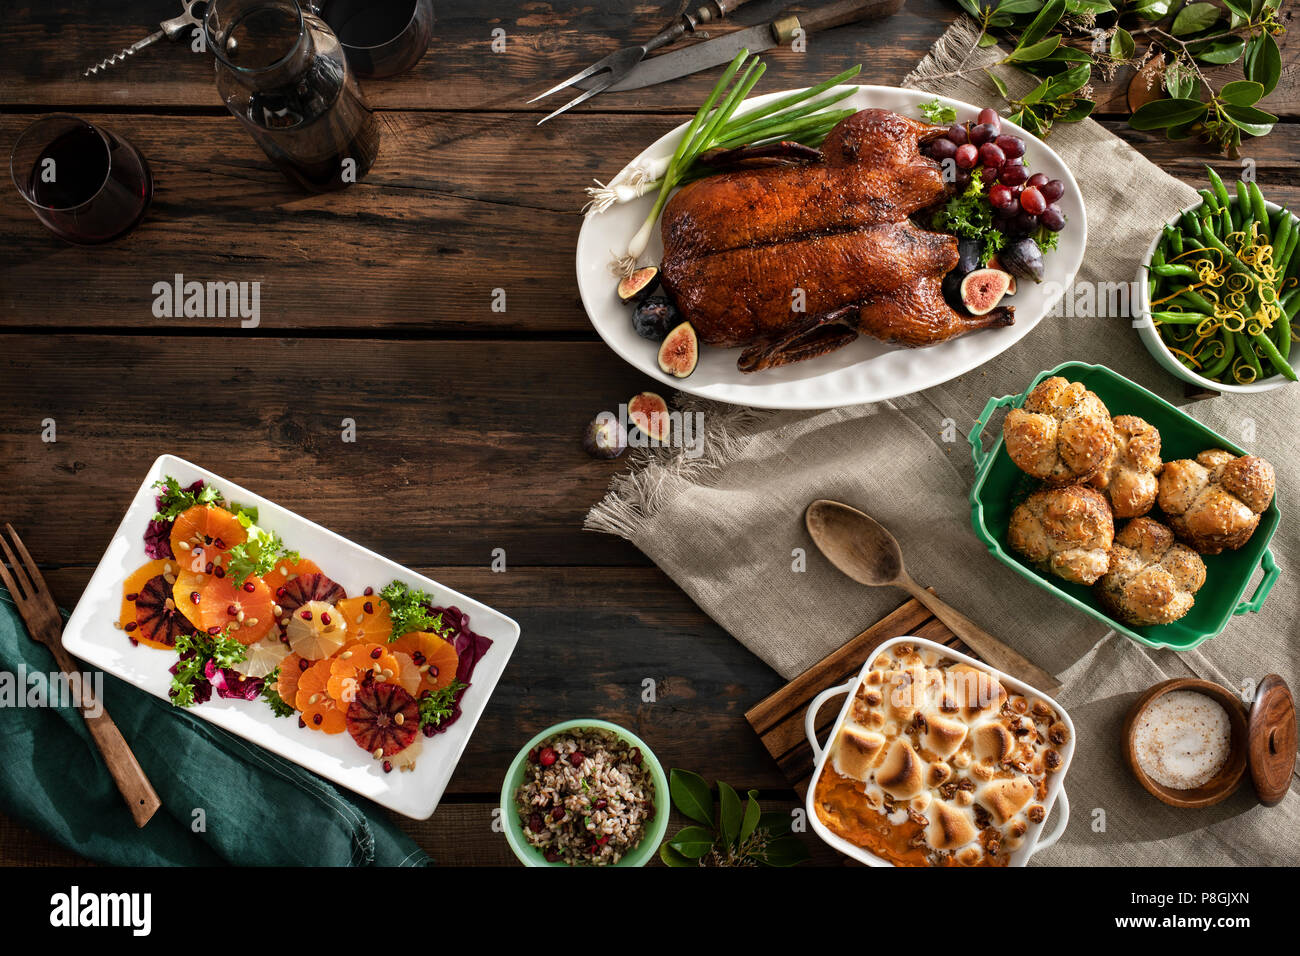 An overhead view of a holiday dinner with roasted duck, citrus salad, rice, green beans, rolls, sweet potato casserole and wine. Warm, moody tones on  - Stock Image